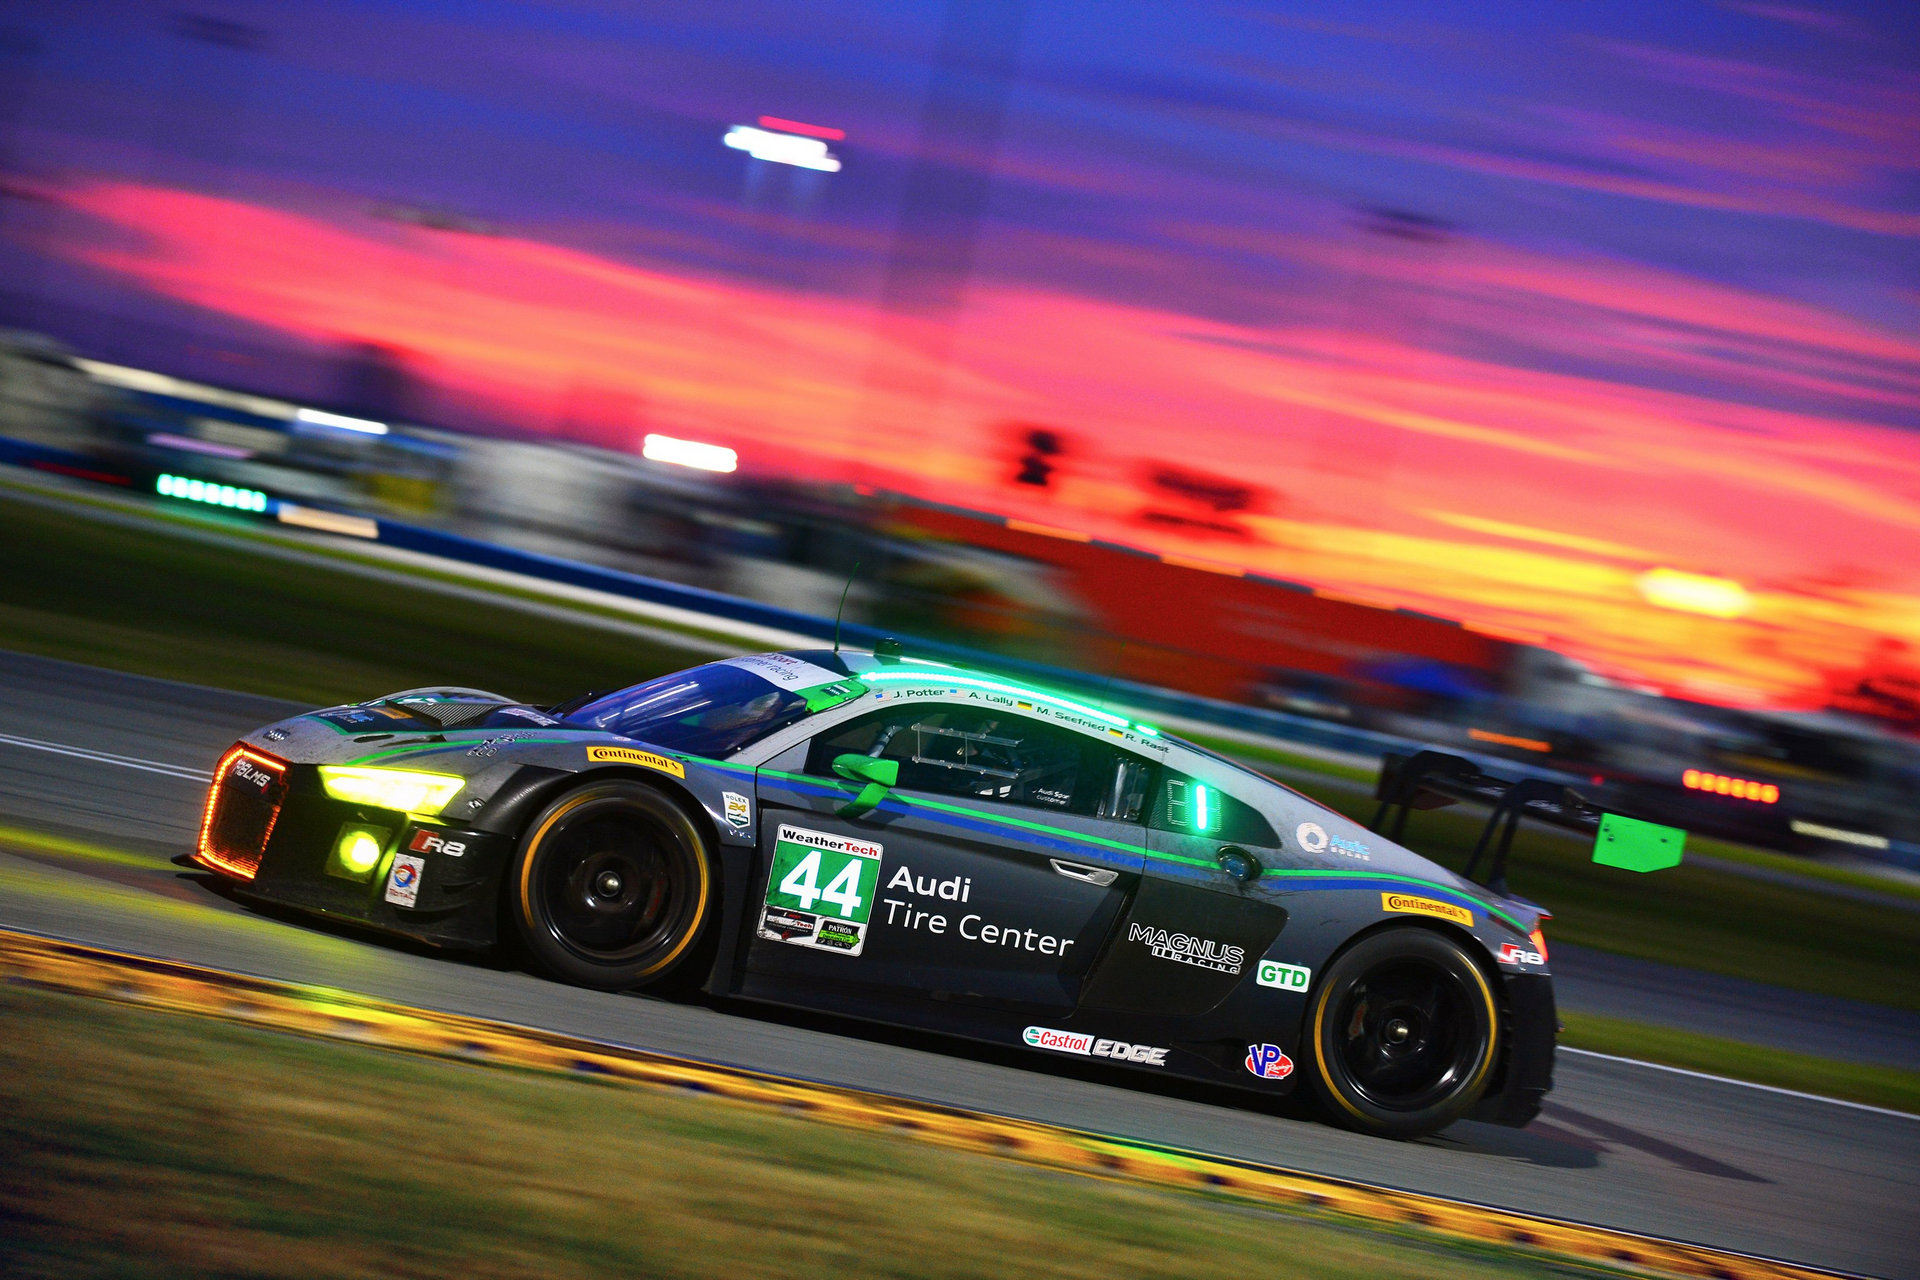 The Audi R8 LMS wins the 2016 Rolex 24 At Daytona in its US race debut - Carrrs Auto Portal